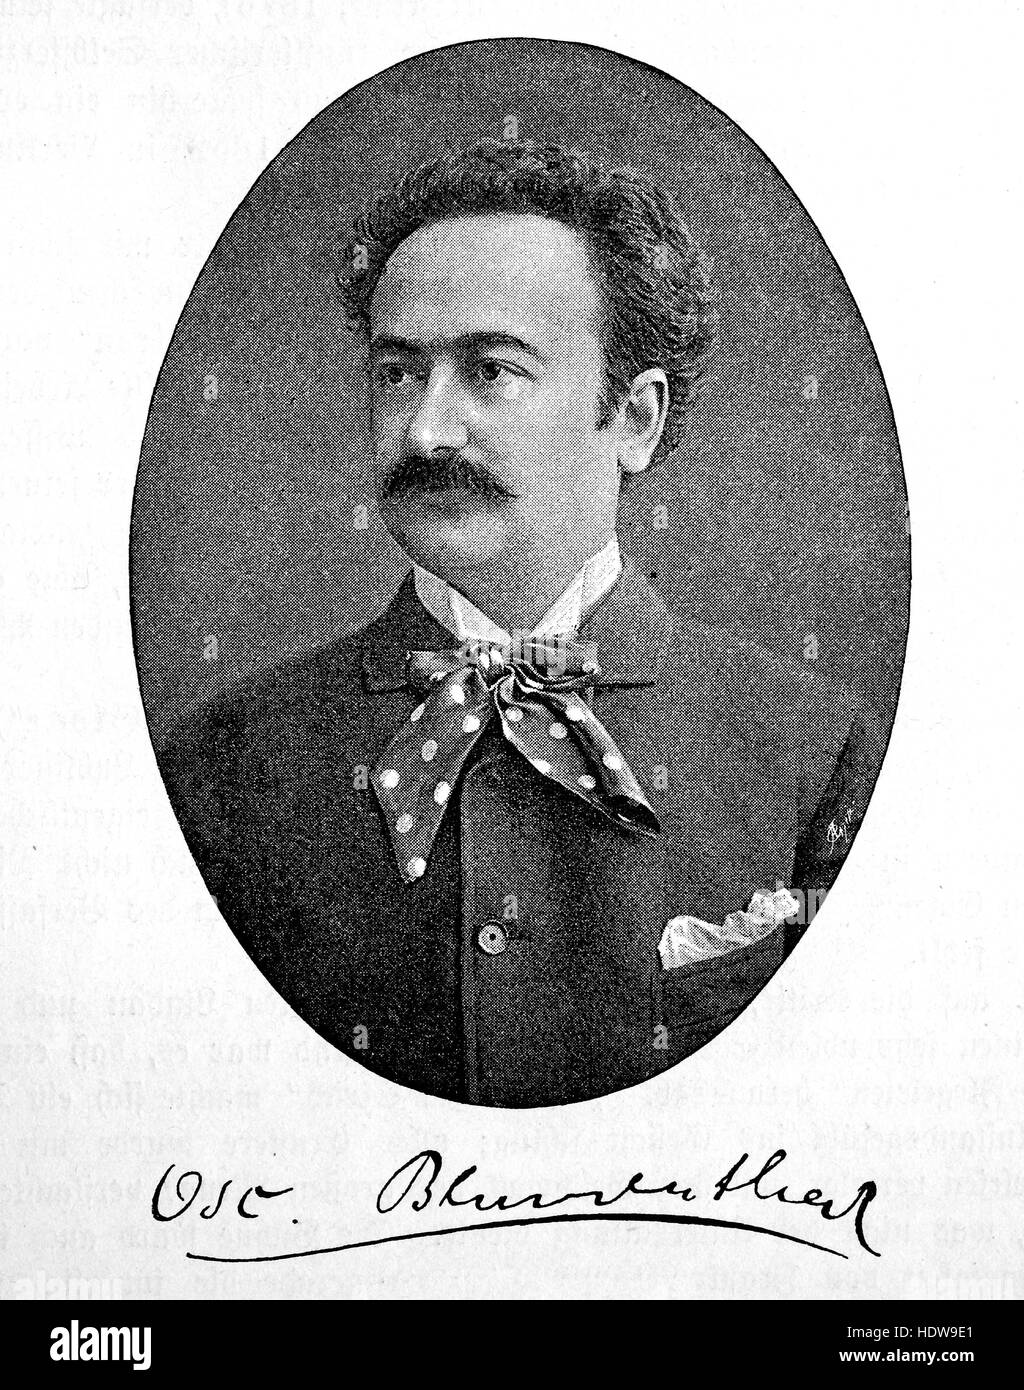 Oscar Blumenthal or Oskar Blumenthal, 1852-1917, German playwright and drama critic, woodcut from the year 1880 - Stock Image